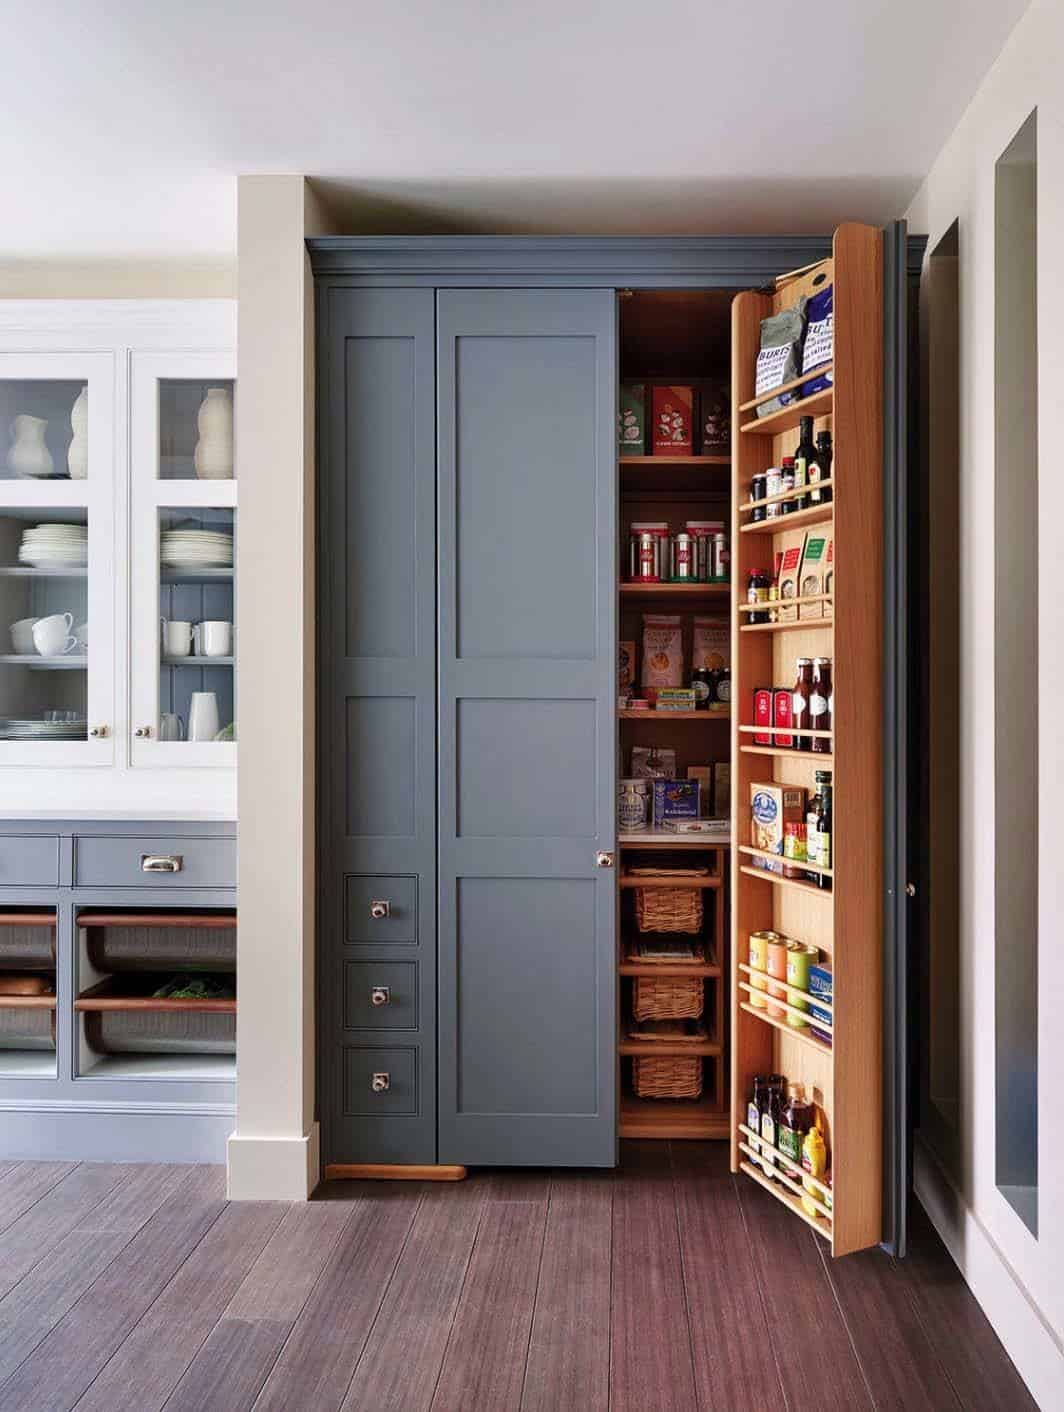 pantry kitchen cabinets 35 clever ideas to help organize your kitchen pantry 1412